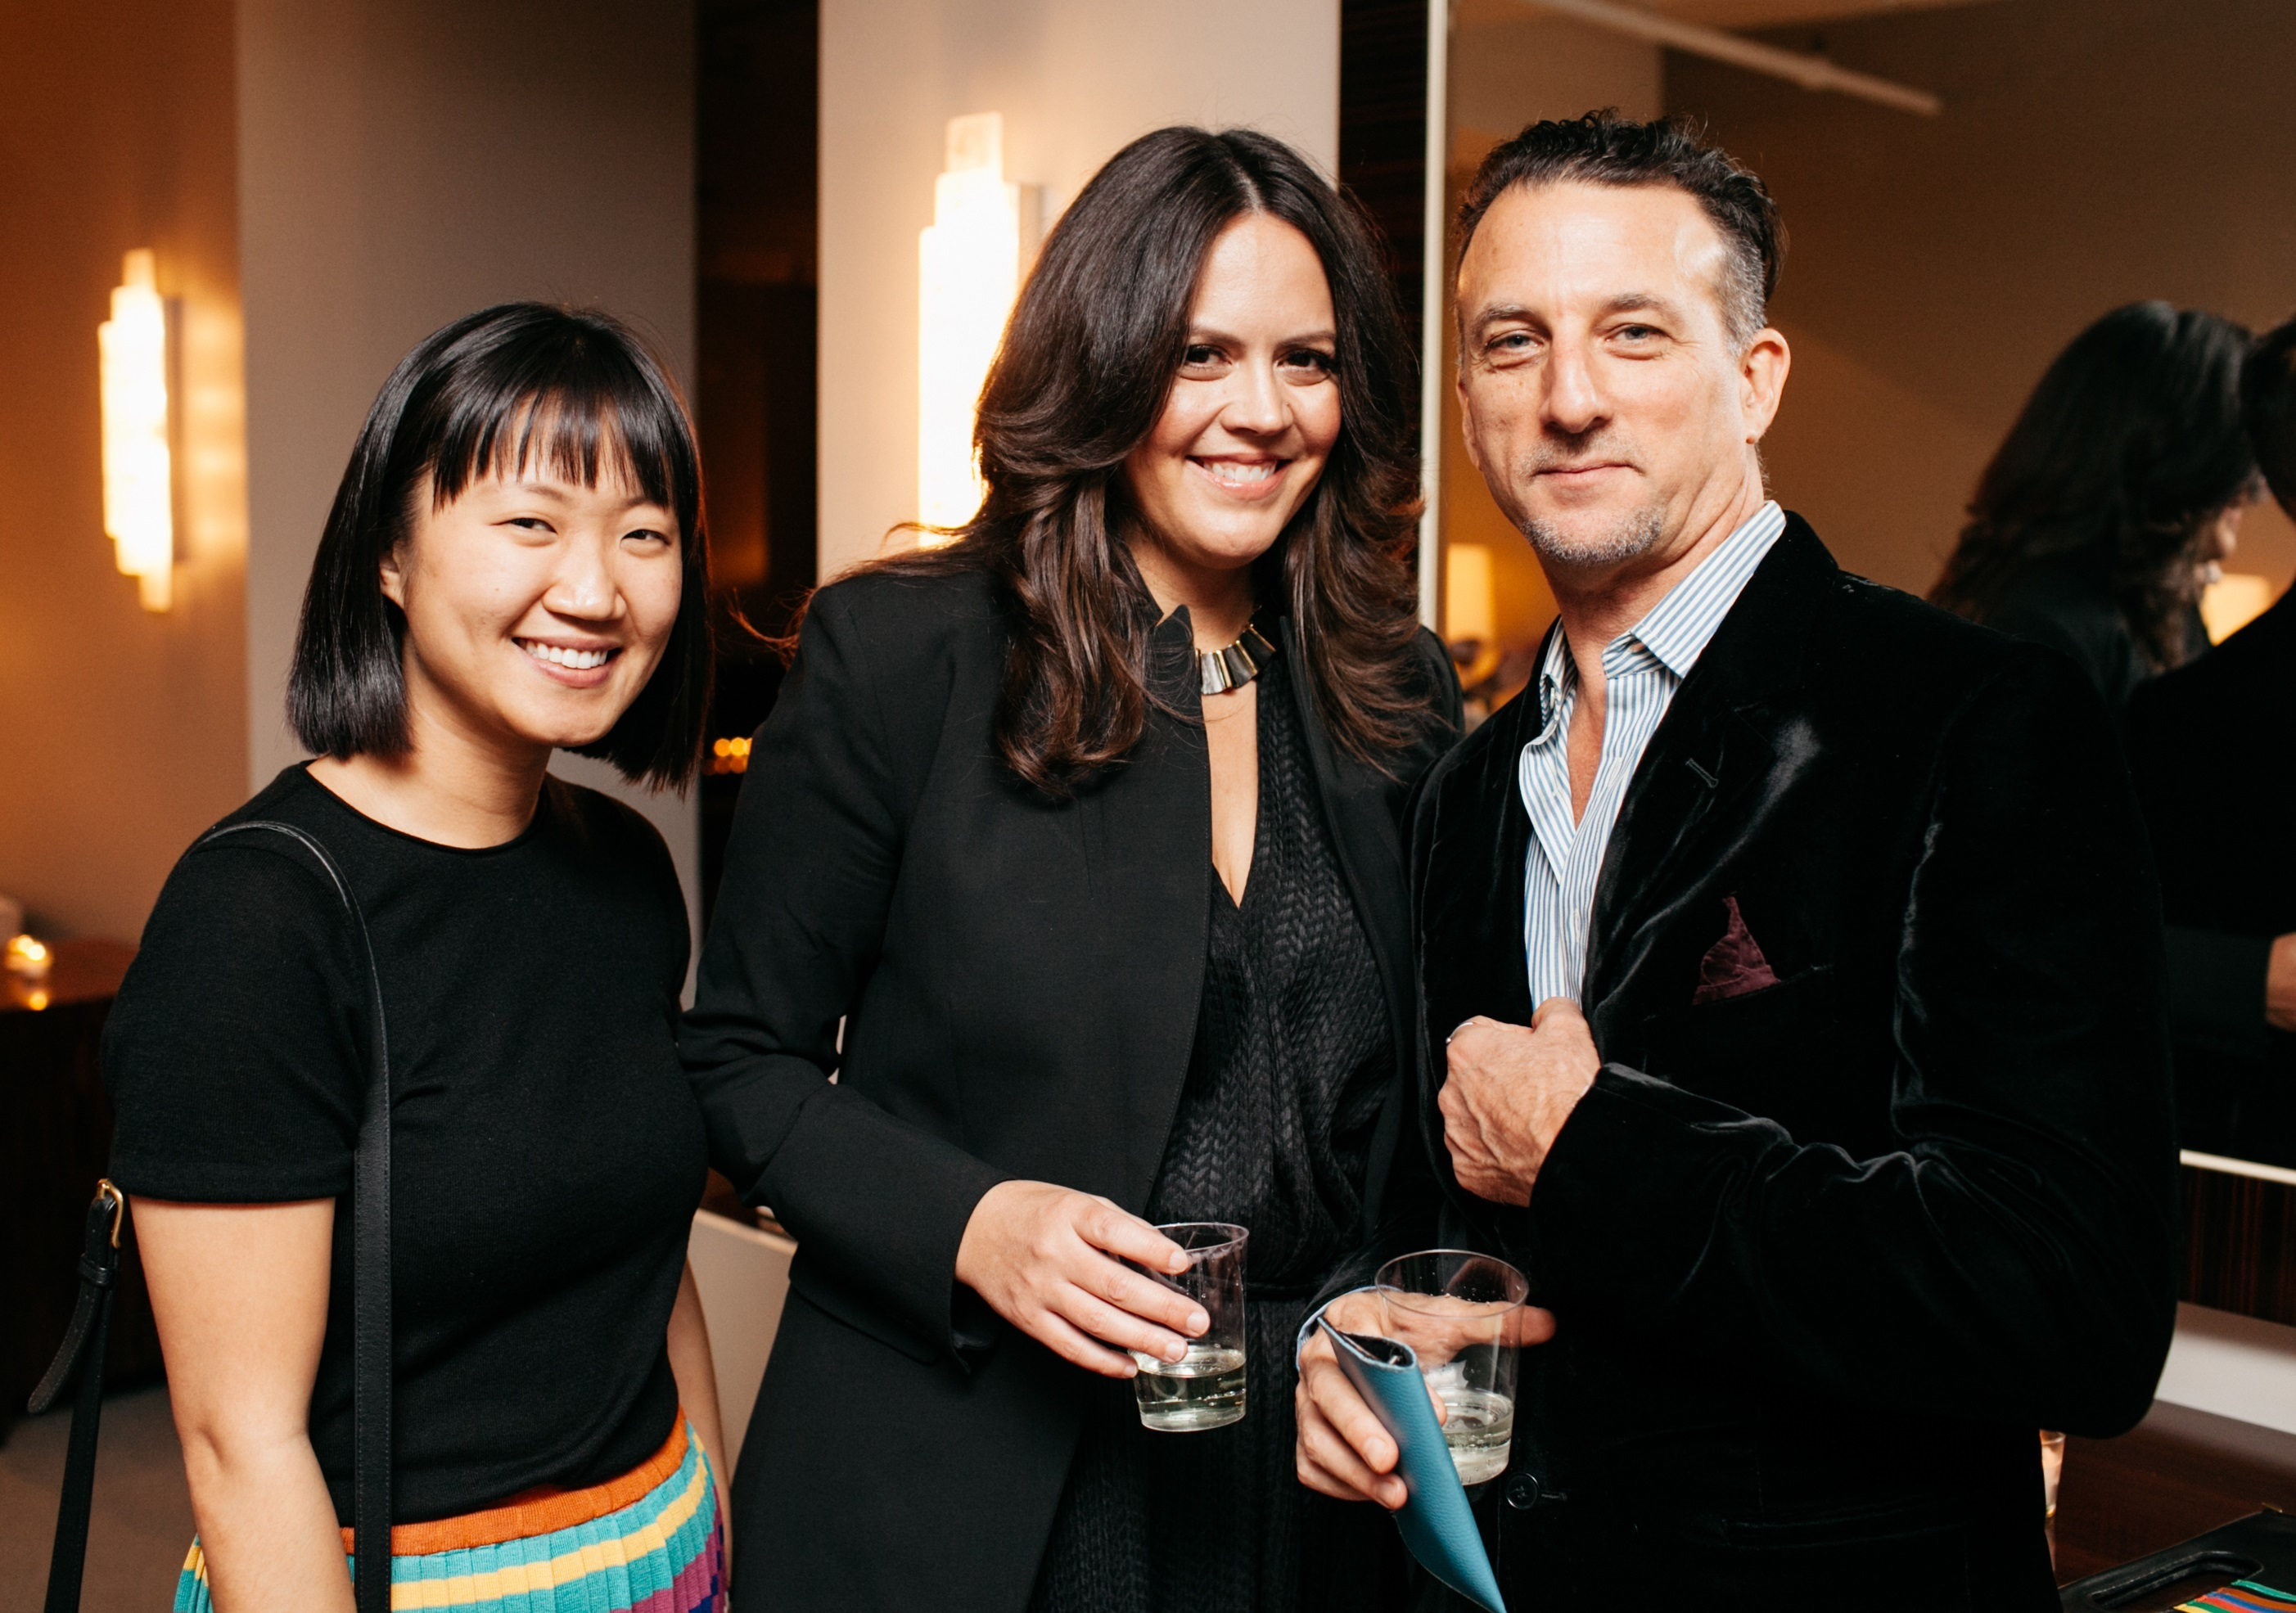 Sunny Lee and Elena Frampton from Frampton Co., DESIGN magazine's cover designer, pose with photographer Jeffrey Rothstein